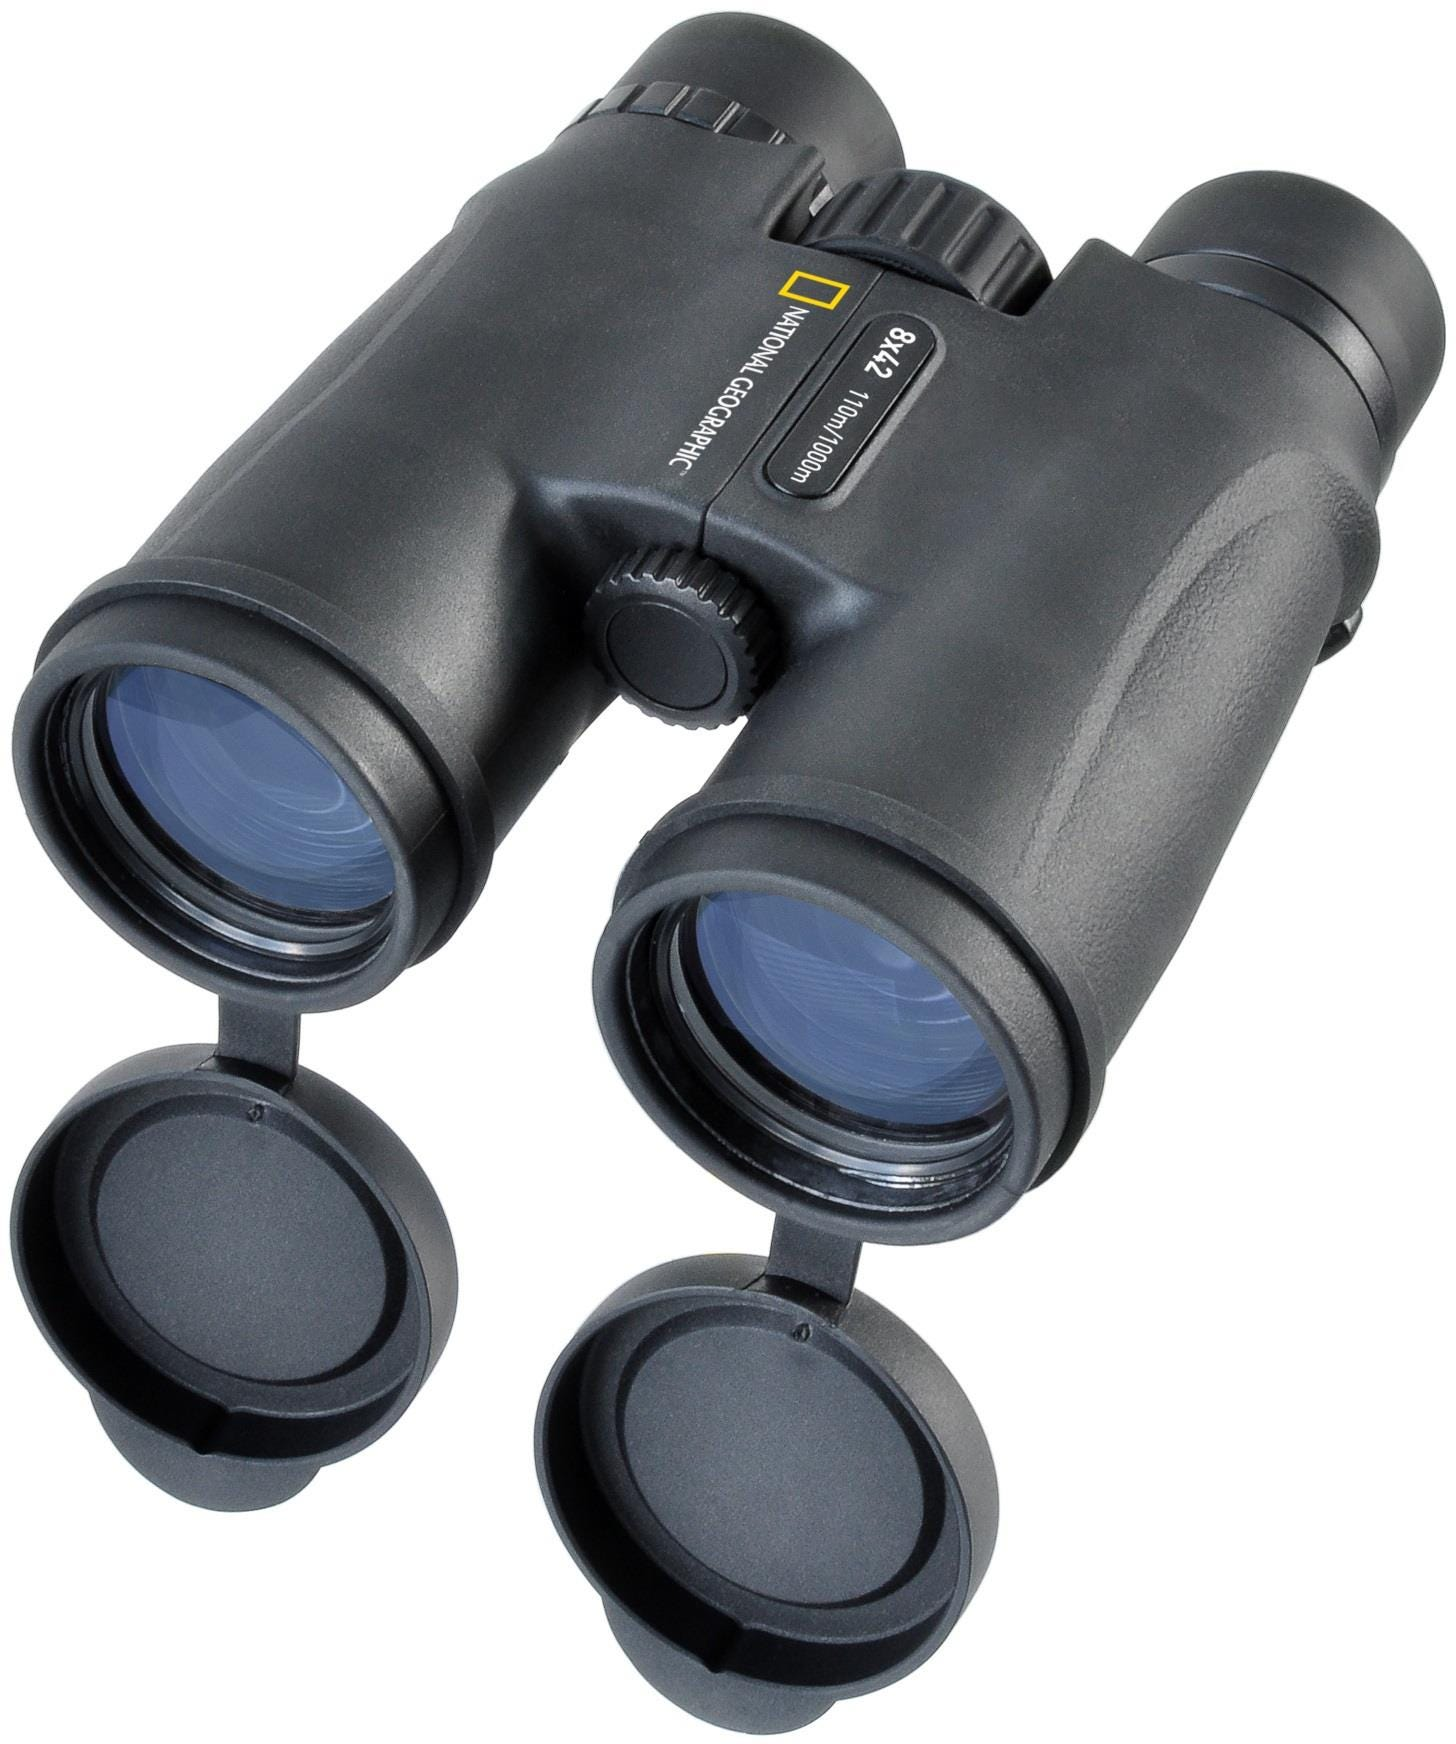 National Geographic 8 x 42 mm Binoculars with Comfort Carrying System - Black